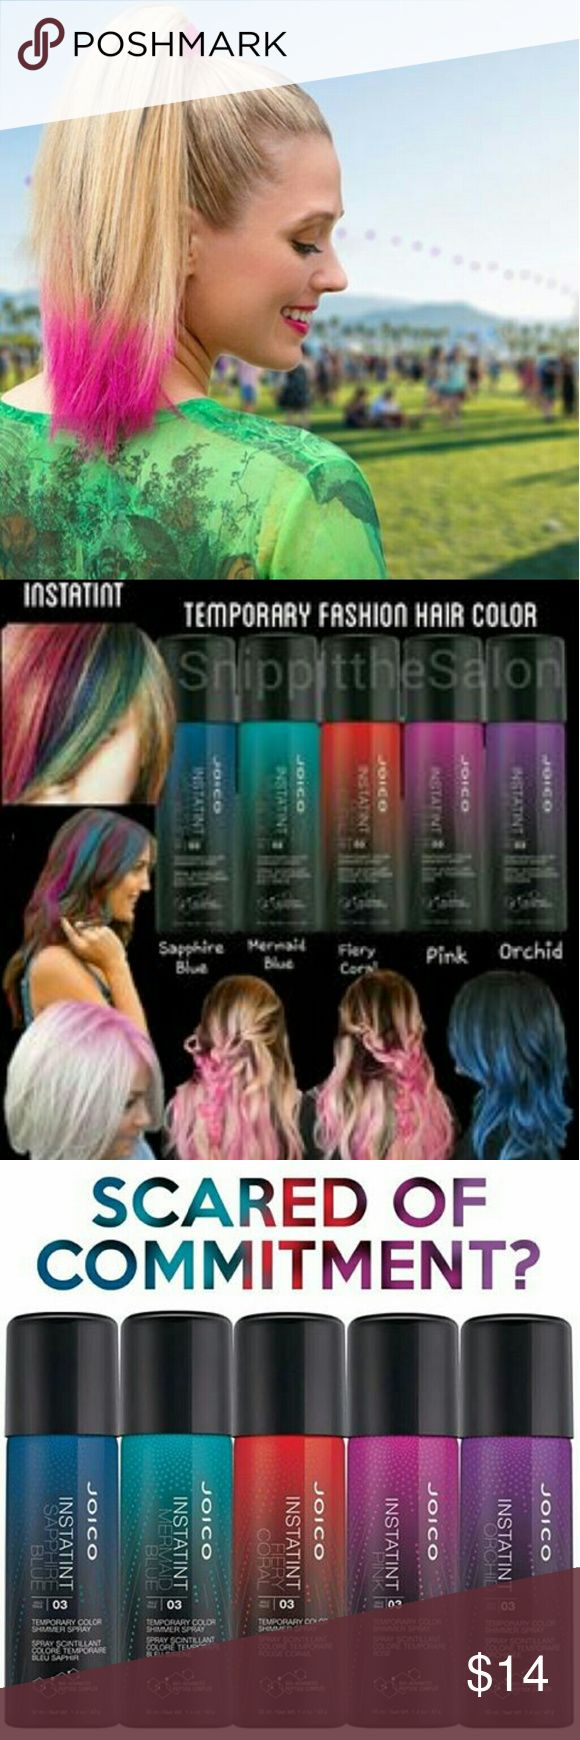 Hot Pink Ends Jan 31st Authentic Joico InstaTint Temporary Color Shimmer Spray 1.4 oz. LASTS 3 DAYS and washes out. Spray over a paper towel. Like hair spray, let it dry then separate with fingers. Shows vibrant on top of any hair color. This colors is Hot Pink. There is also a True Pink. 30% off 2 or more.  Just Bundle and it will calculate your discount. 10 colors to choose from. joico Other